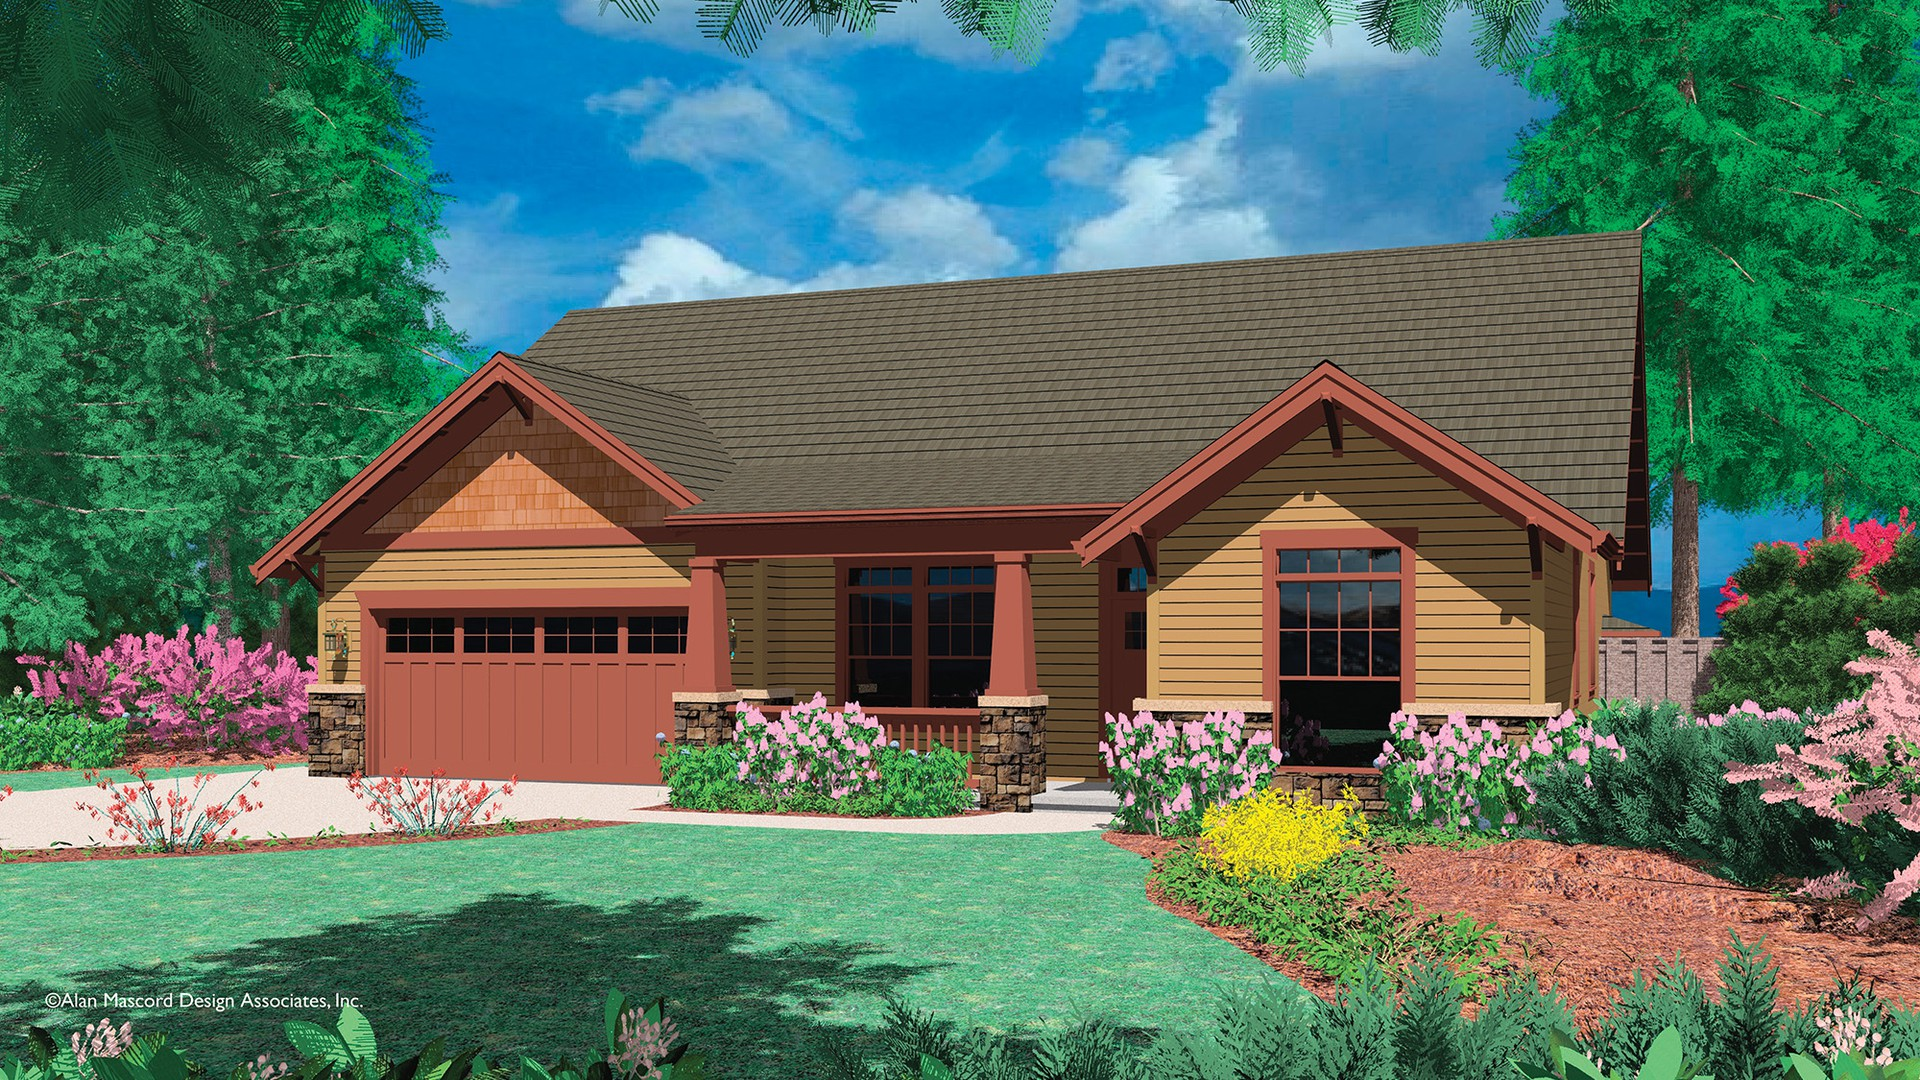 Cottage House Plan 1147A The Garnet: 1683 Sqft, 3 Beds, 2